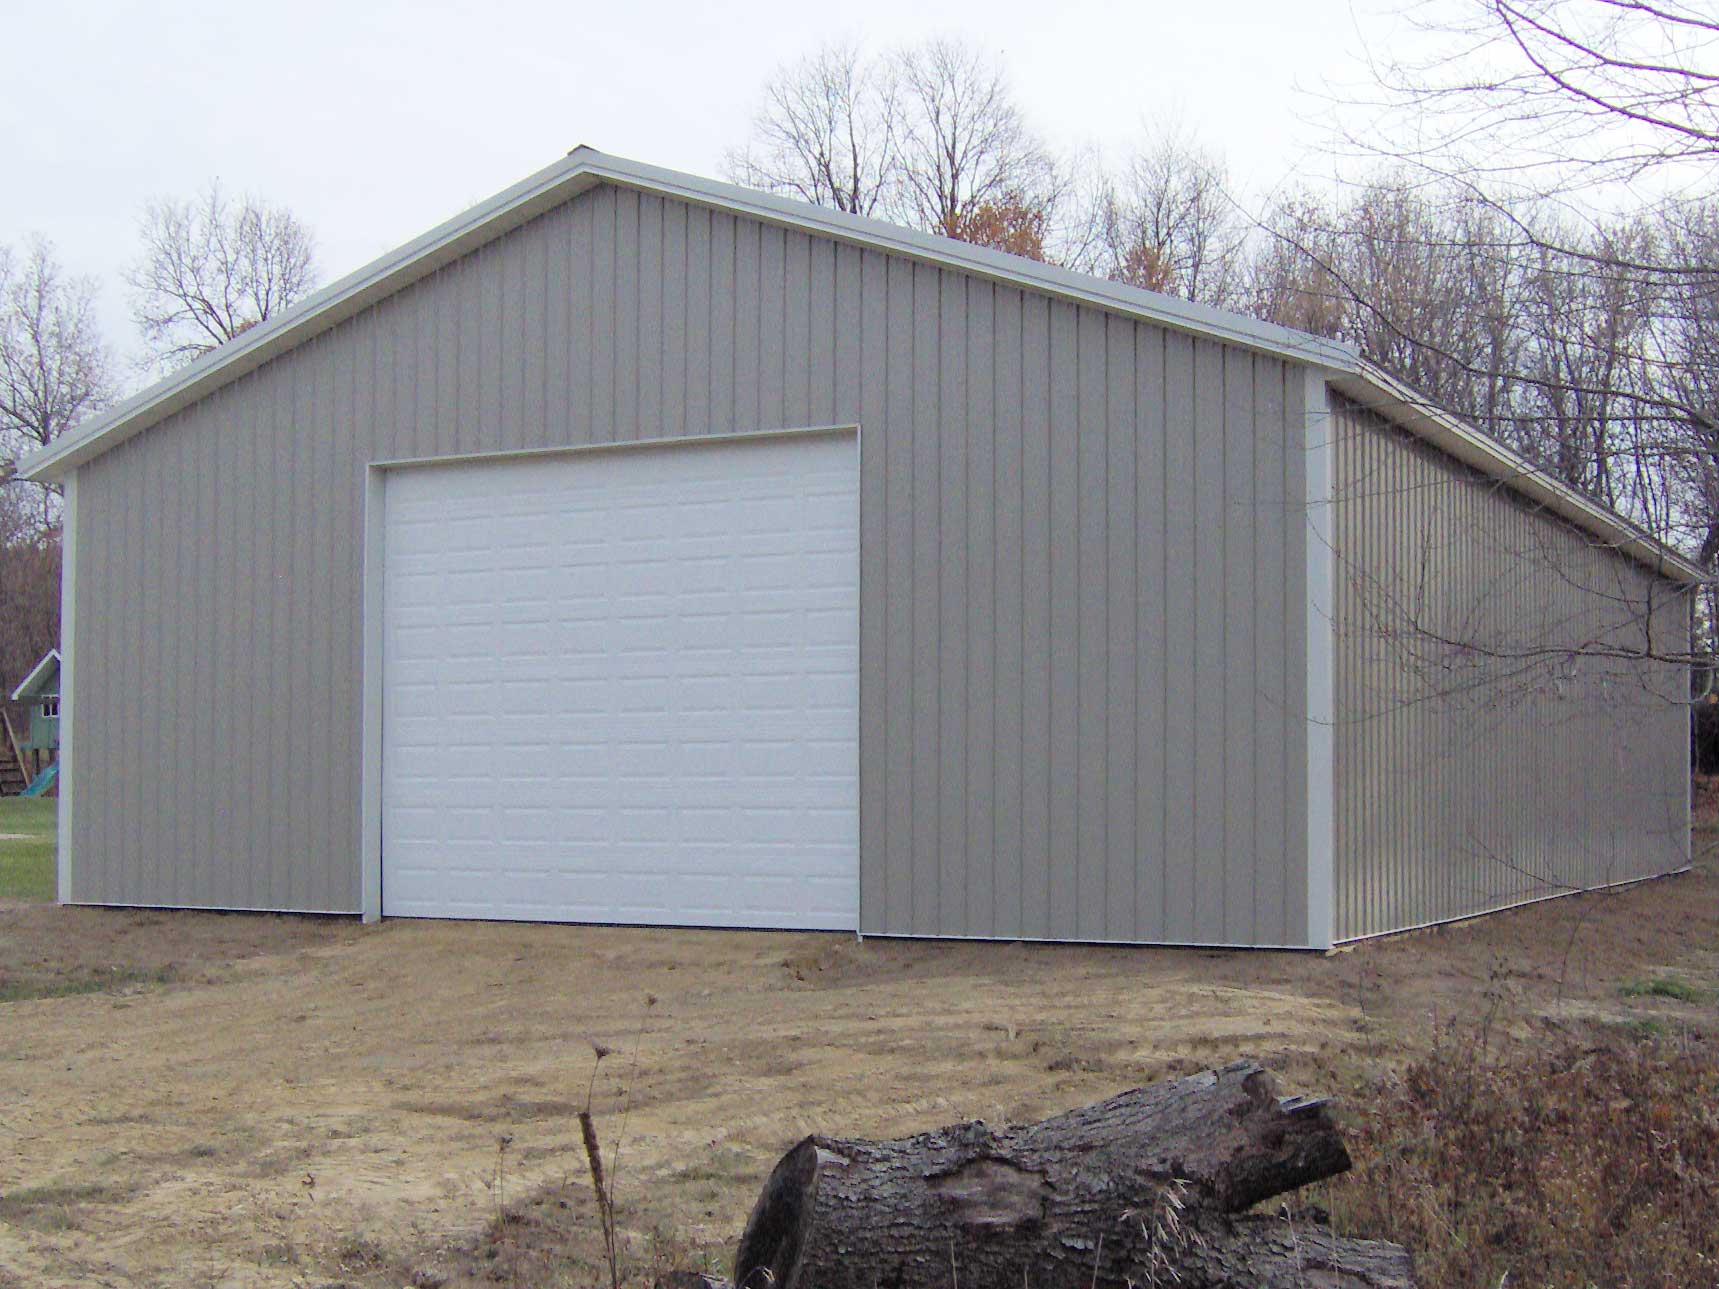 Garage Metal Buildings: Advantages and Cost